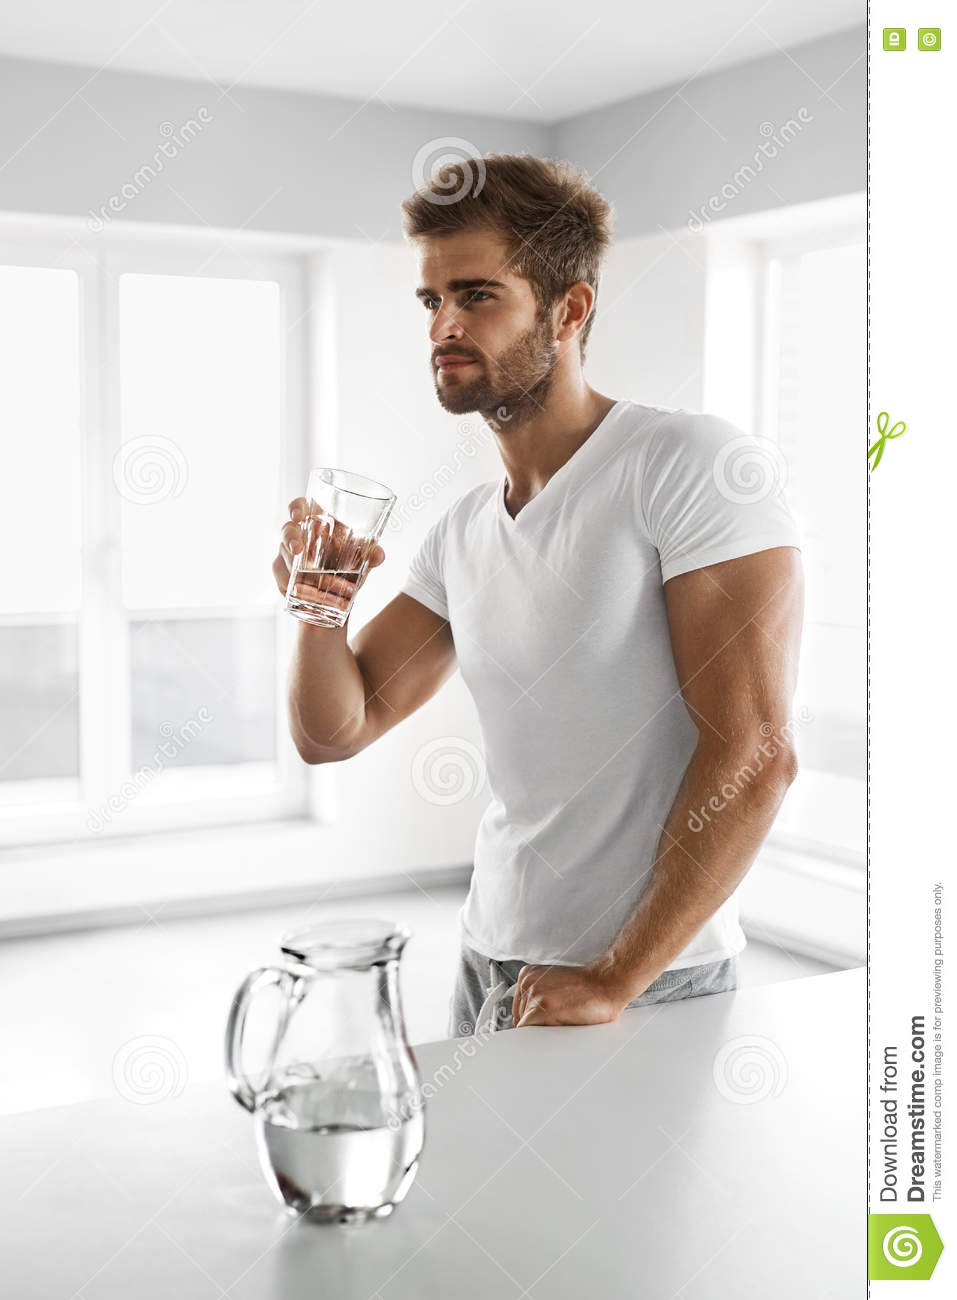 f754648d779b Drinking Water. Closeup Portrait Of Handsome Young Man With Fit Body  Drinking Fresh Water From Glass In Morning. Thirsty Fitness Male Model  Enjoying ...